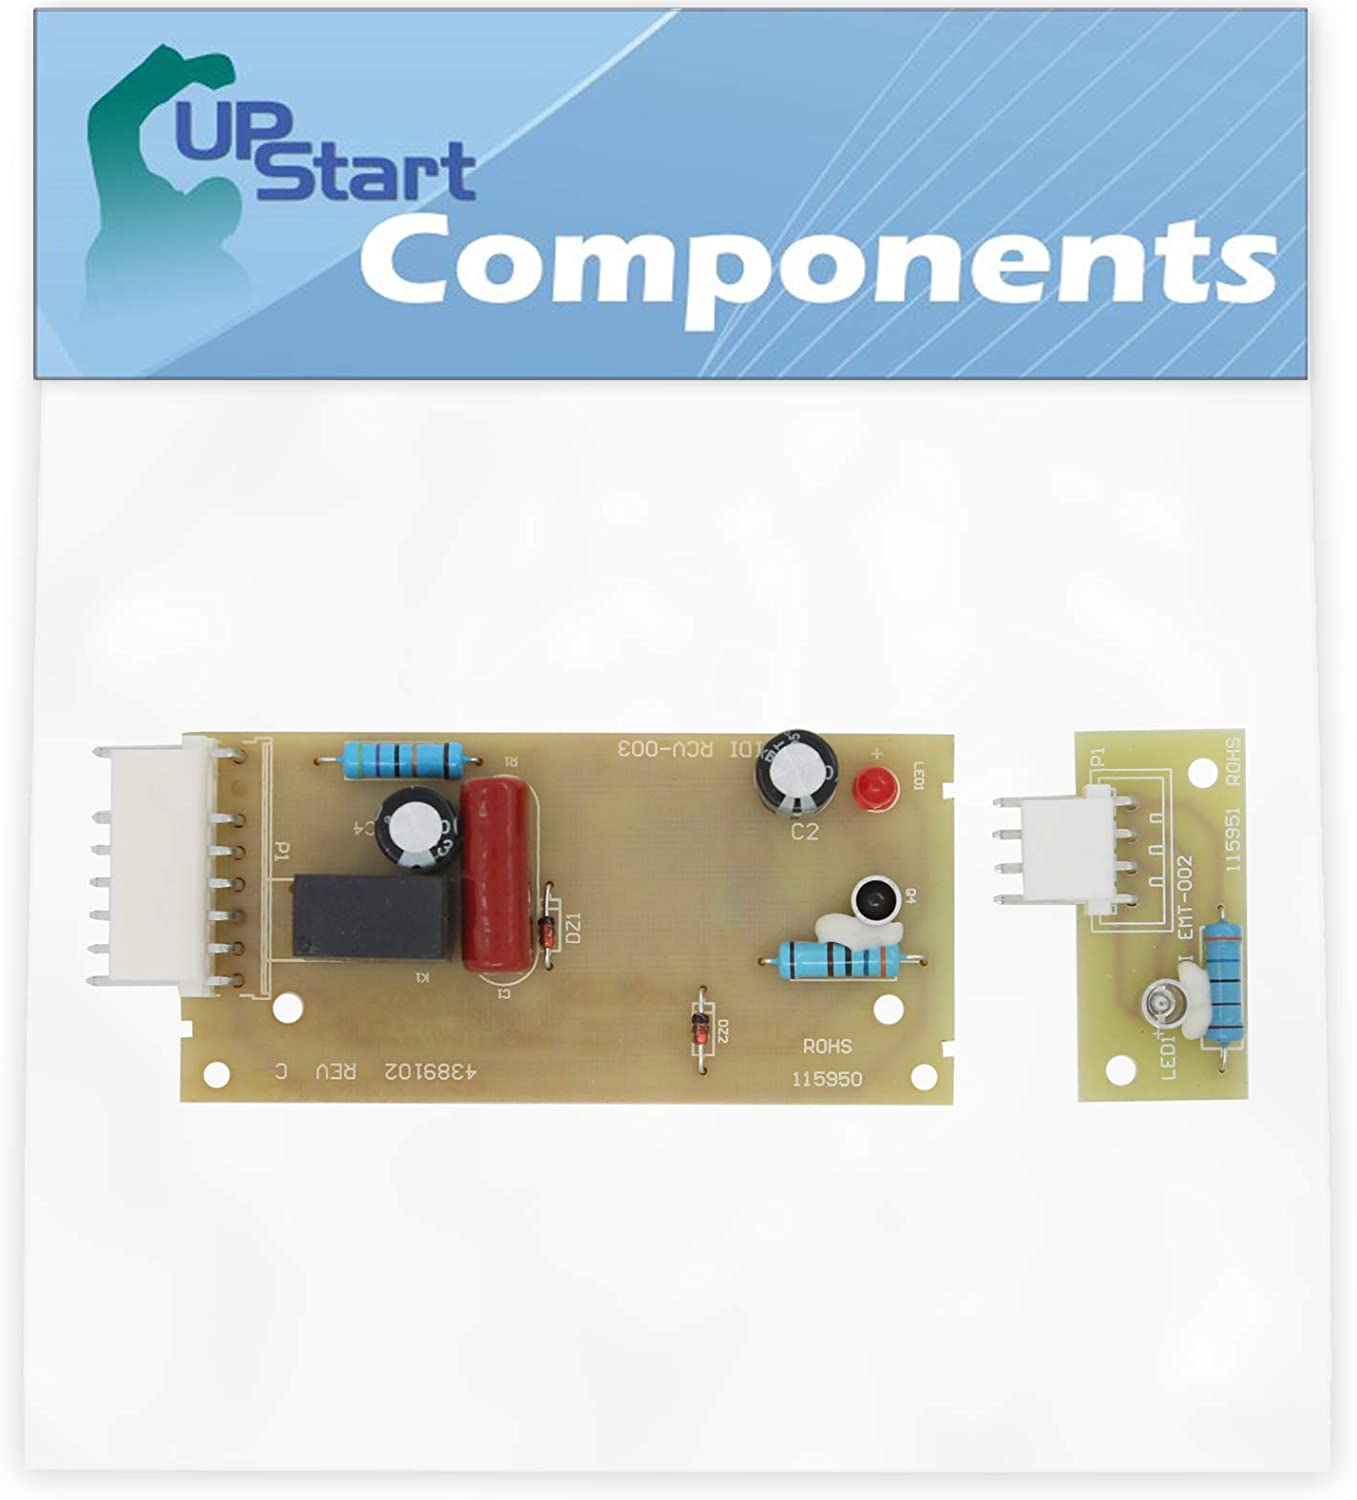 W10757851 Refrigerator Ice Level Control Board Replacement for KitchenAid KSBS25INSS00 Refrigerator - Compatible with 4389102 Icemaker Emitter Sensor Control Board - UpStart Components Brand